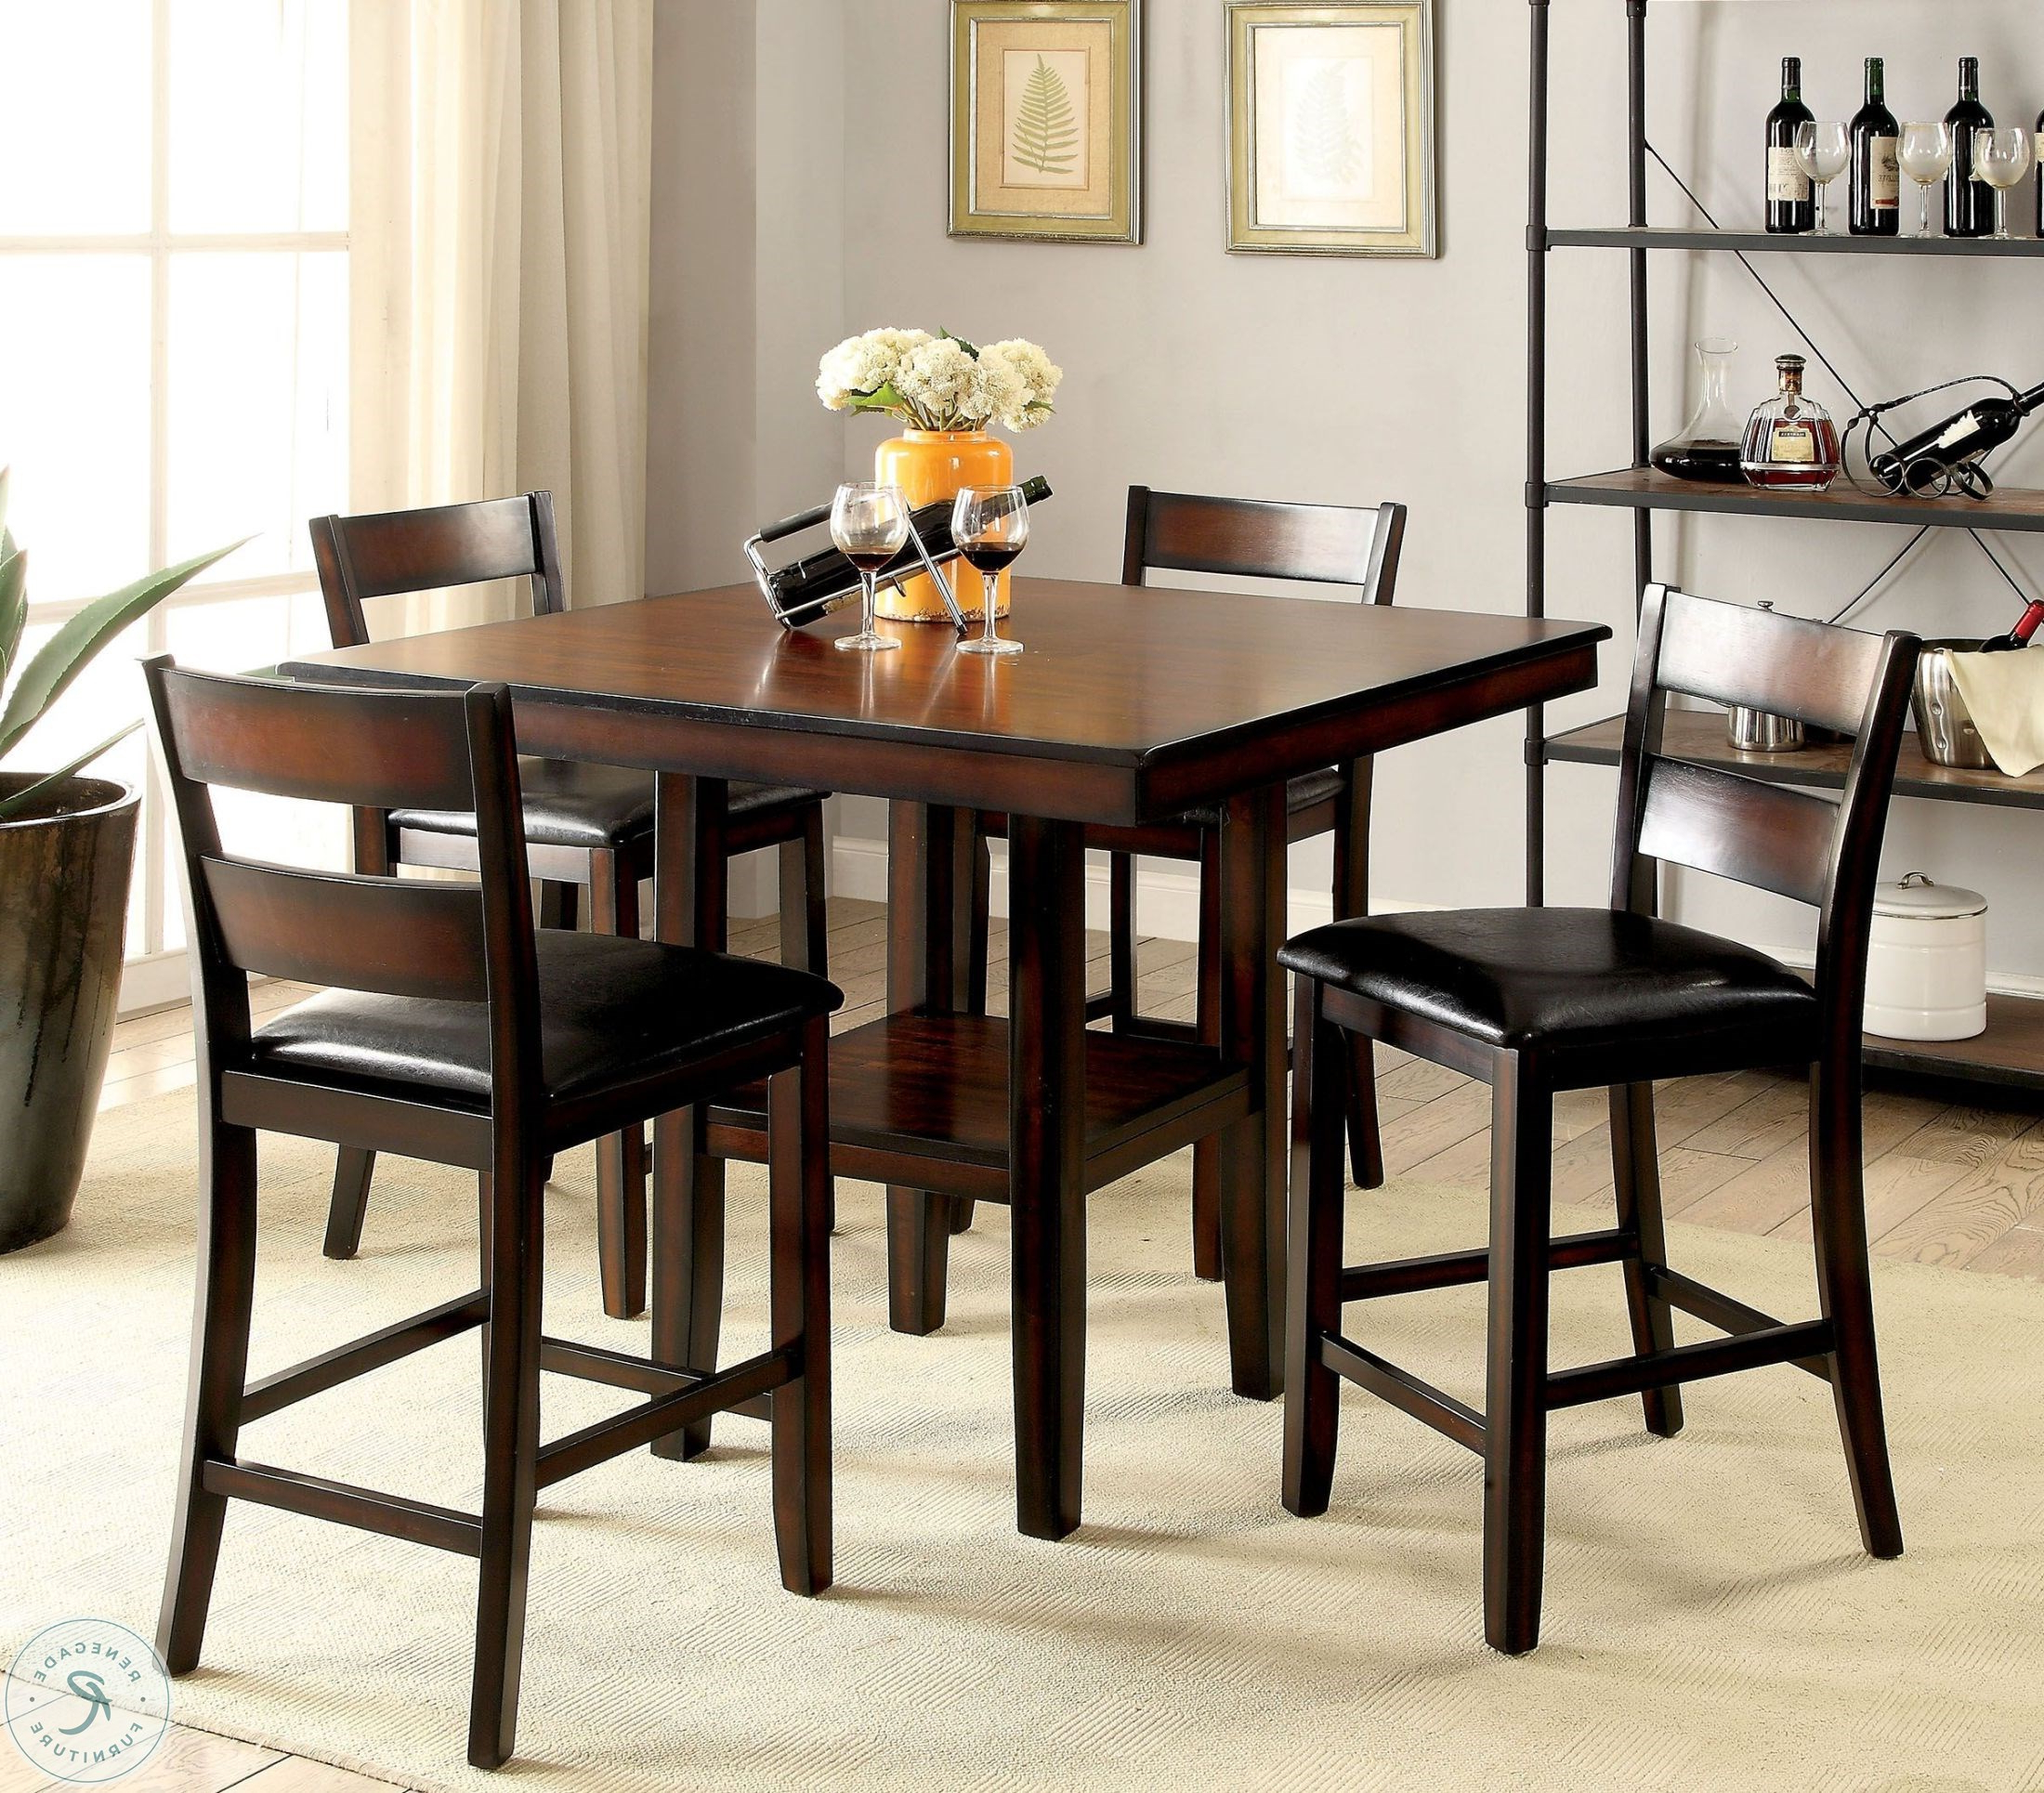 Penelope 3 Piece Counter Height Wood Dining Sets Pertaining To Famous Norah Ii Brown Cherry 5 Piece Counter Height Dining Set From (View 15 of 25)